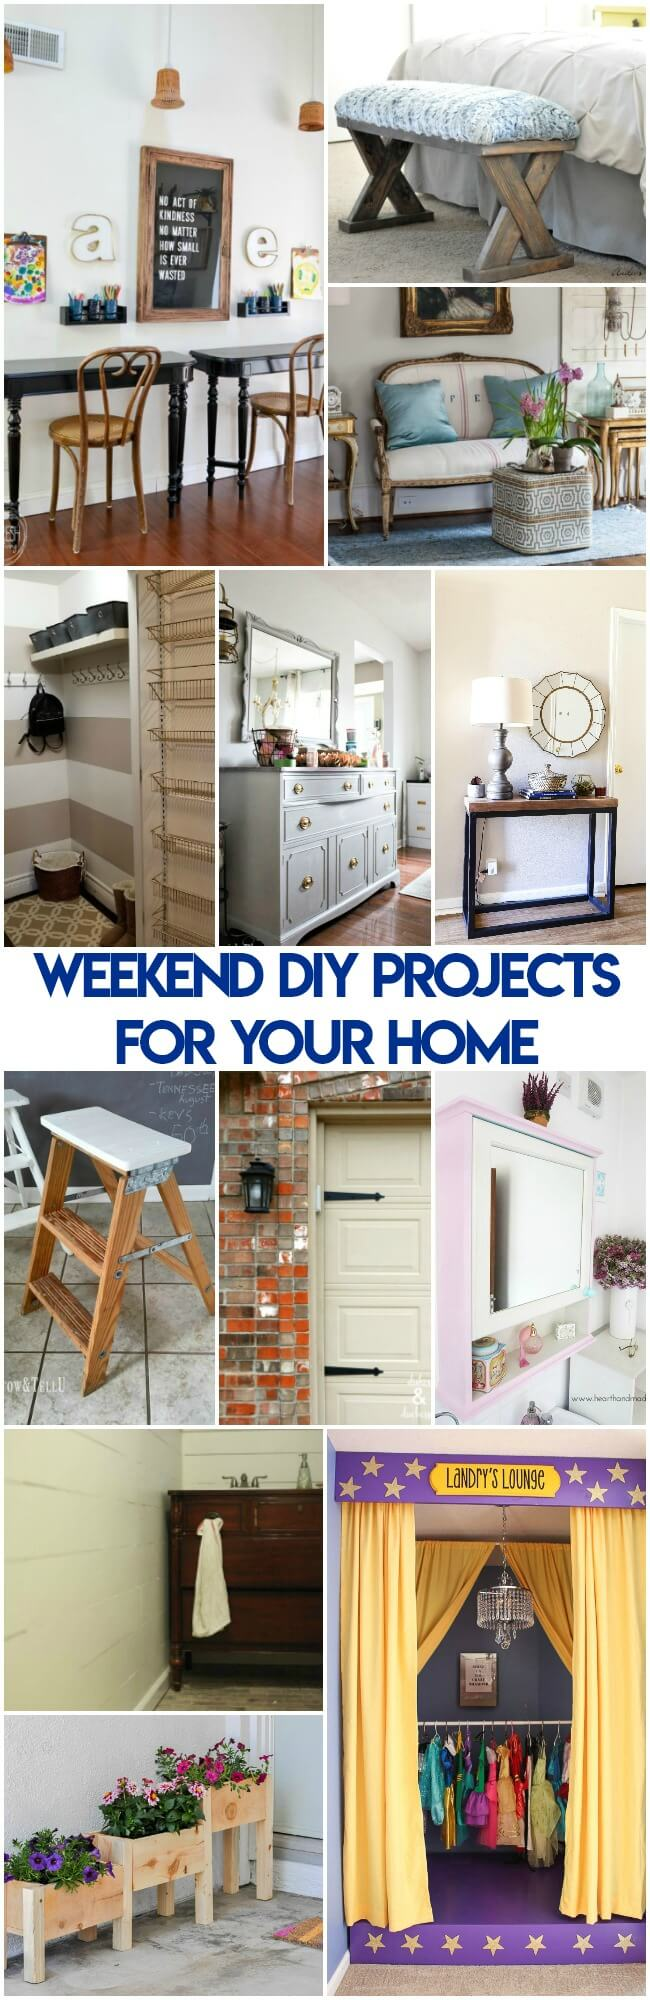 Got a itching for some DIY projects? Here's a few Weekend DIY Projects for Your Home that are inexpensive and straightforward to do.